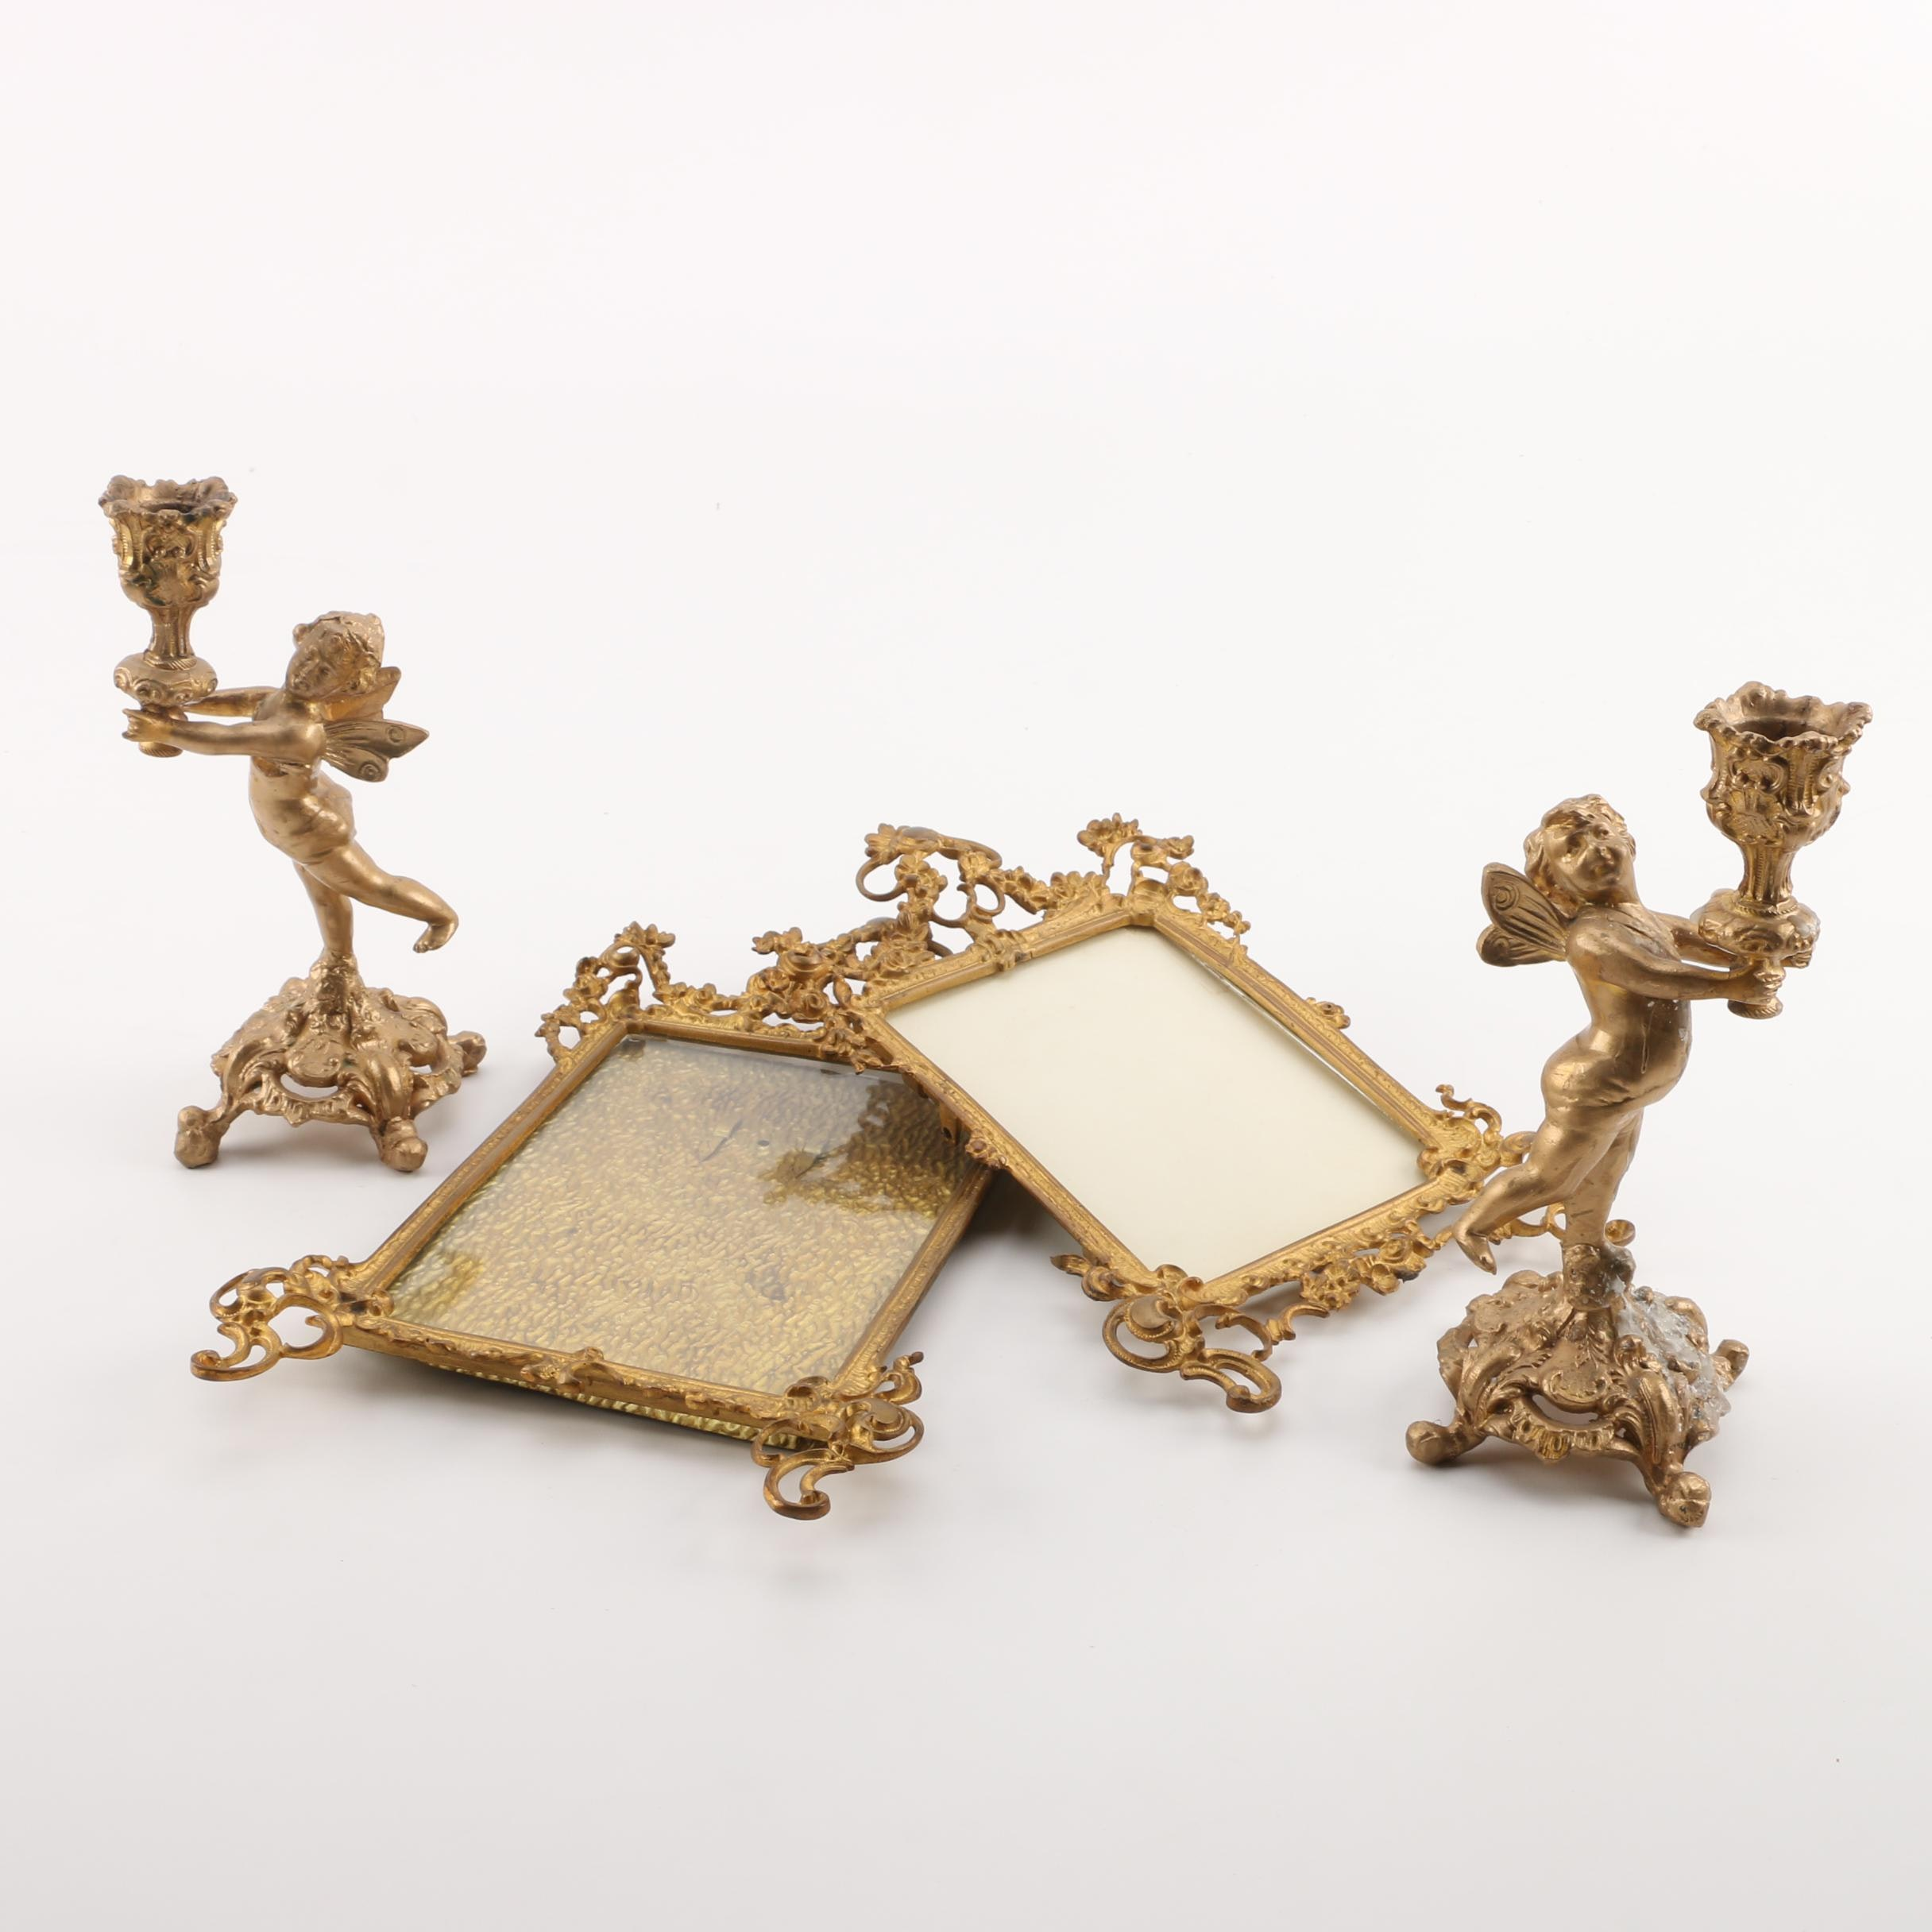 Rococo Style Picture Frames and Candleholders